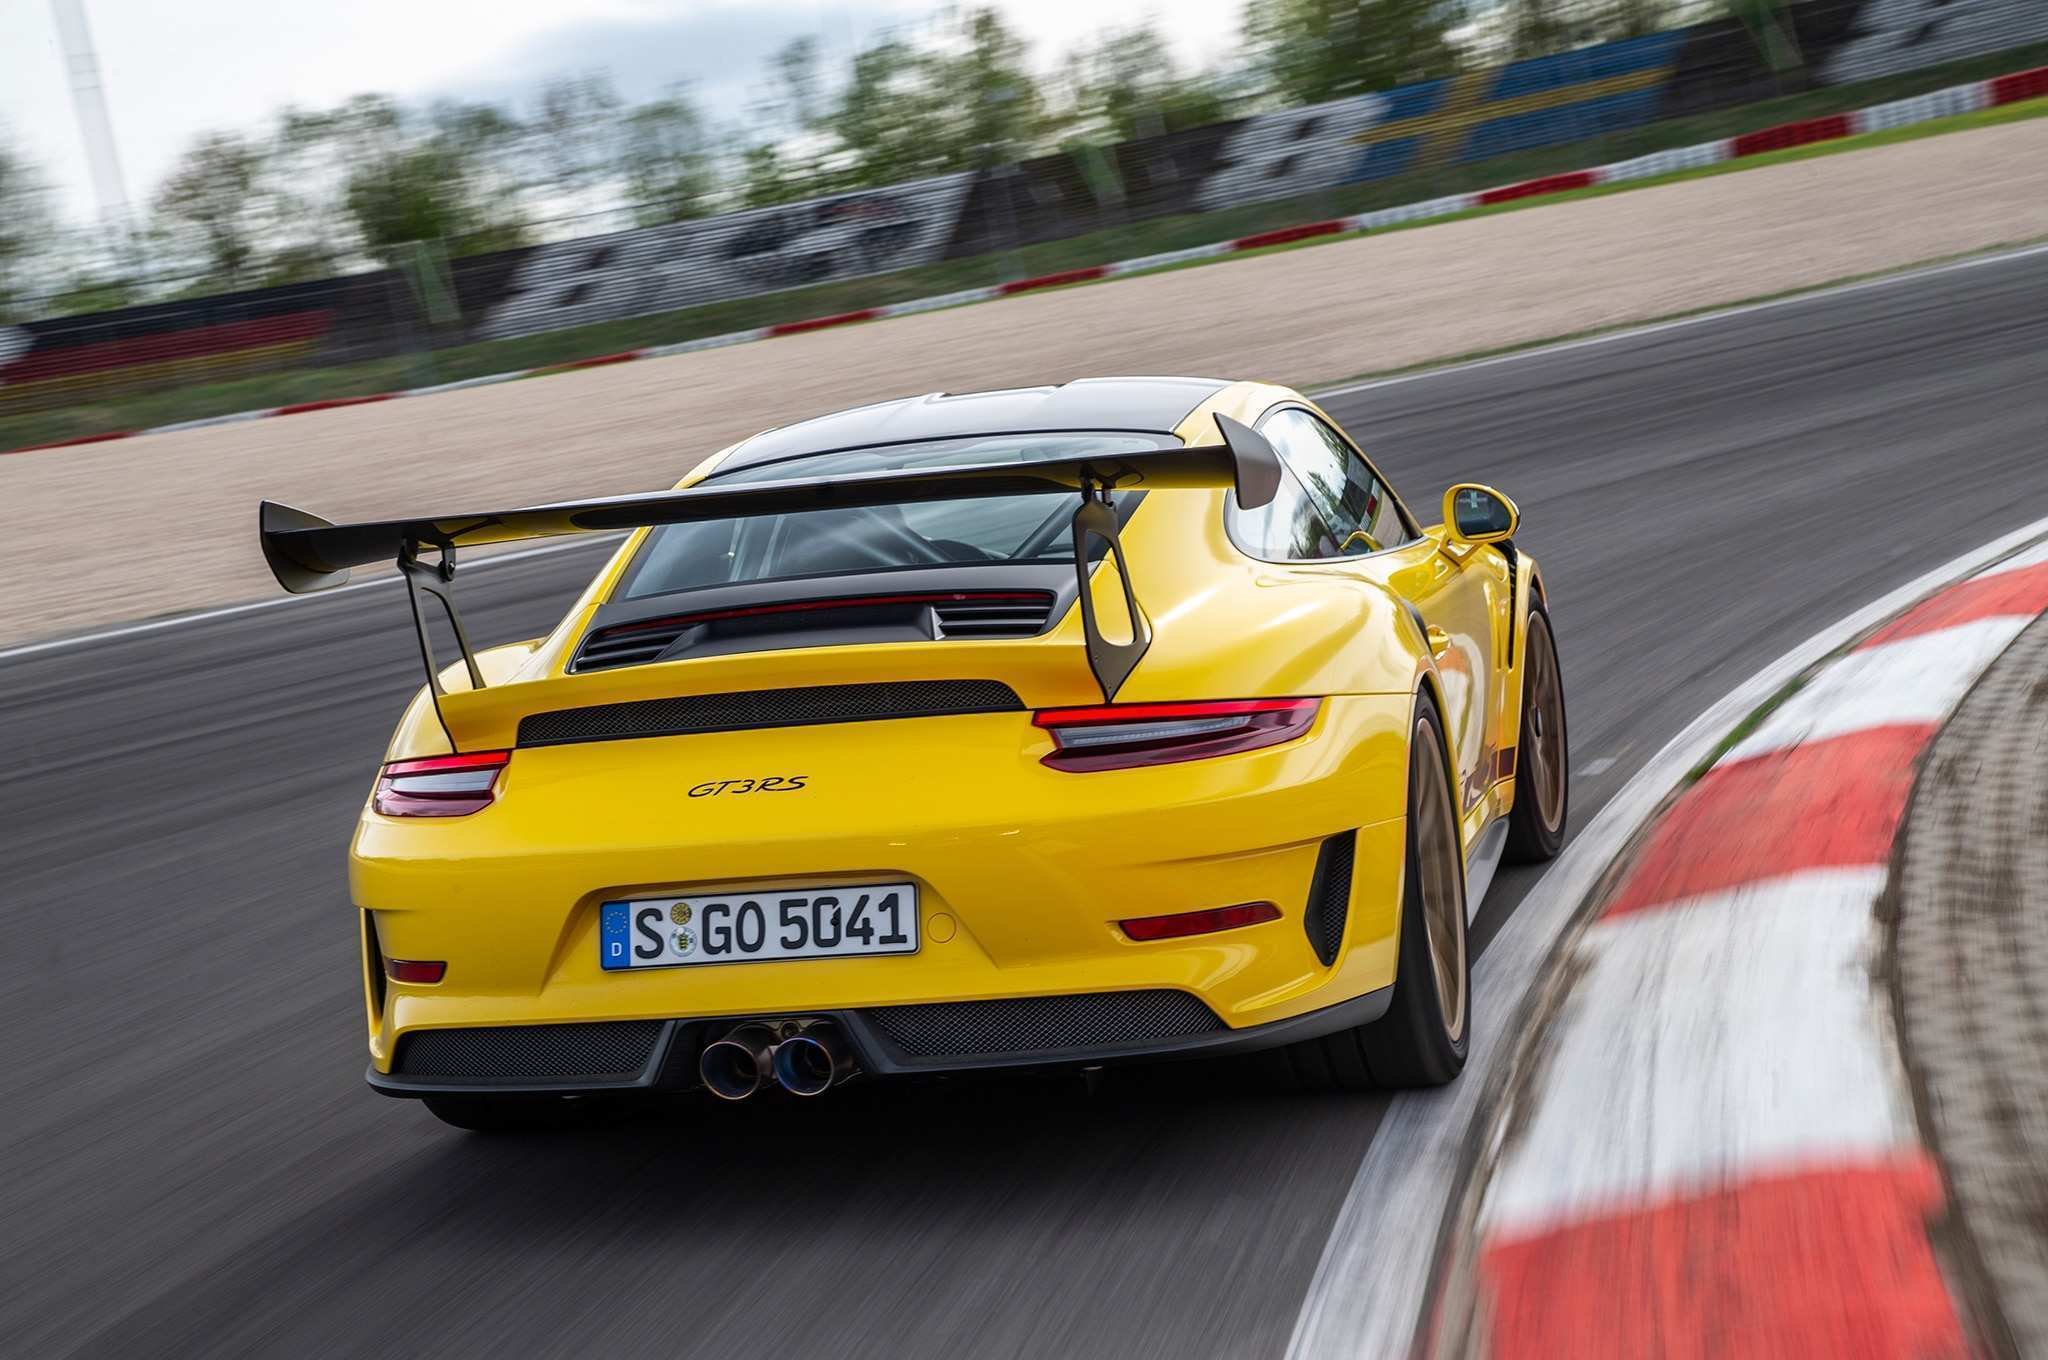 20 New 2019 Porsche 911 Gt3 Rs Price and Review by 2019 Porsche 911 Gt3 Rs